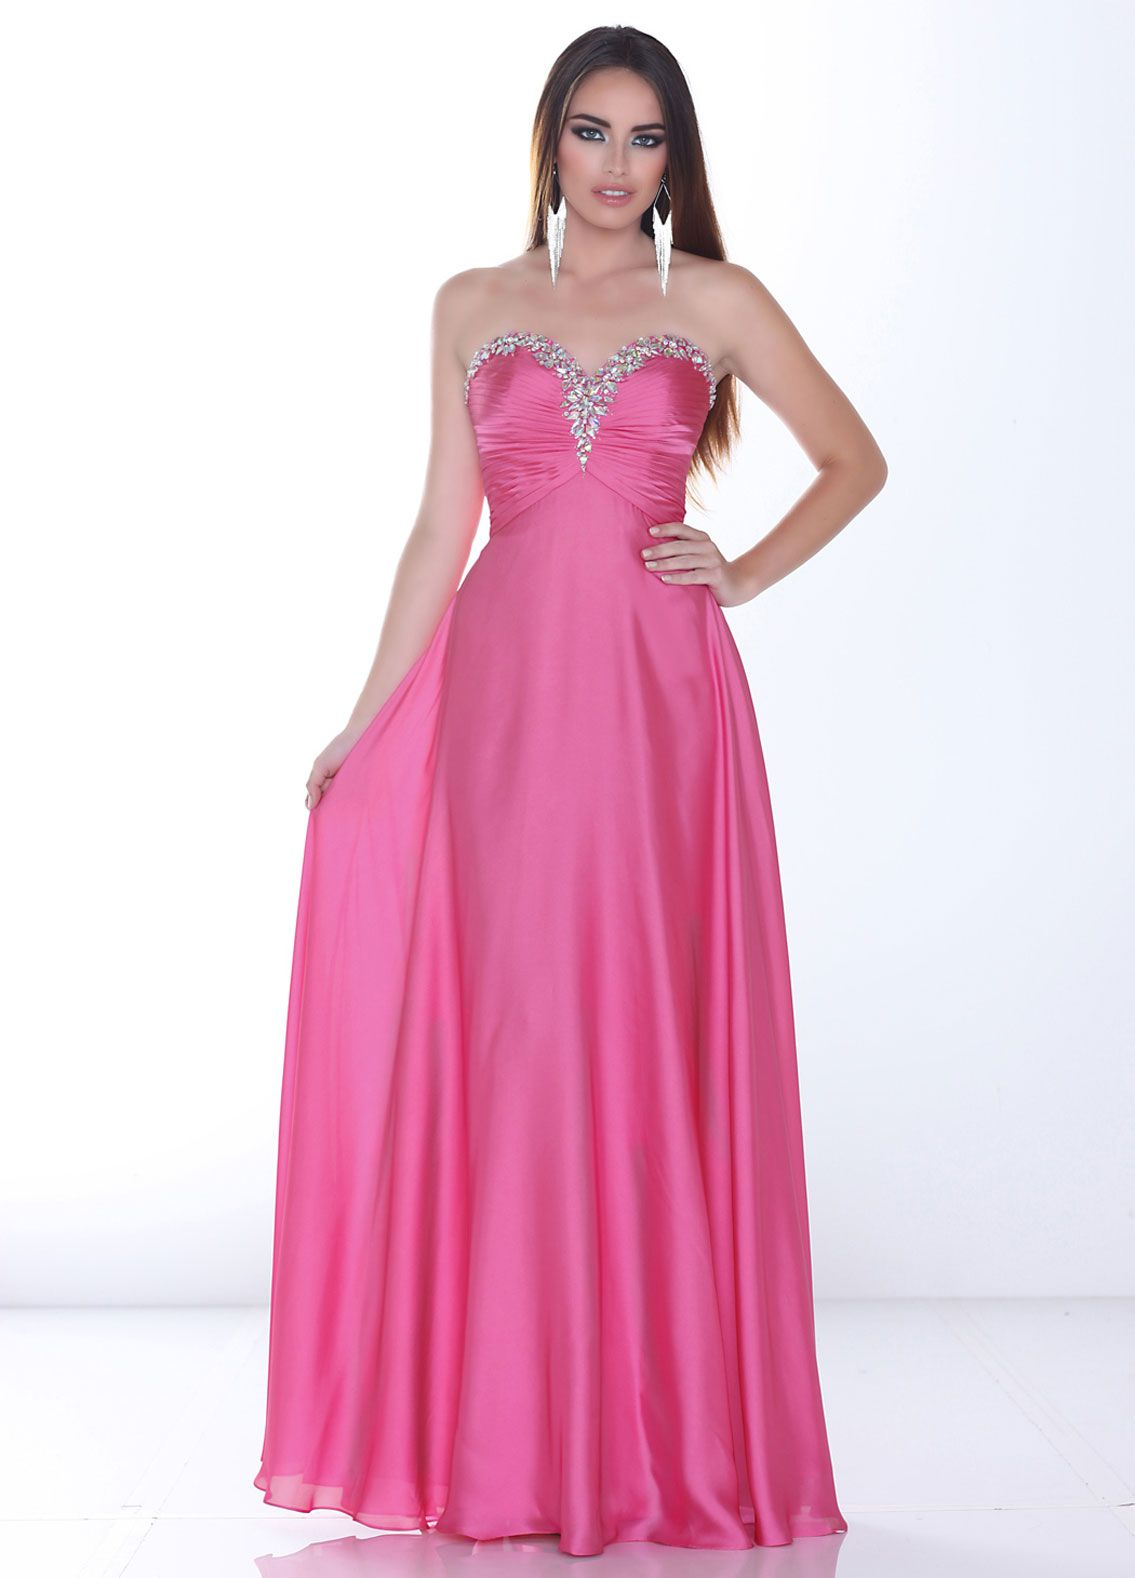 Prom Gowns by Xcite Prom | Prom! | Pinterest | Prom, Prom 2014 and Gowns